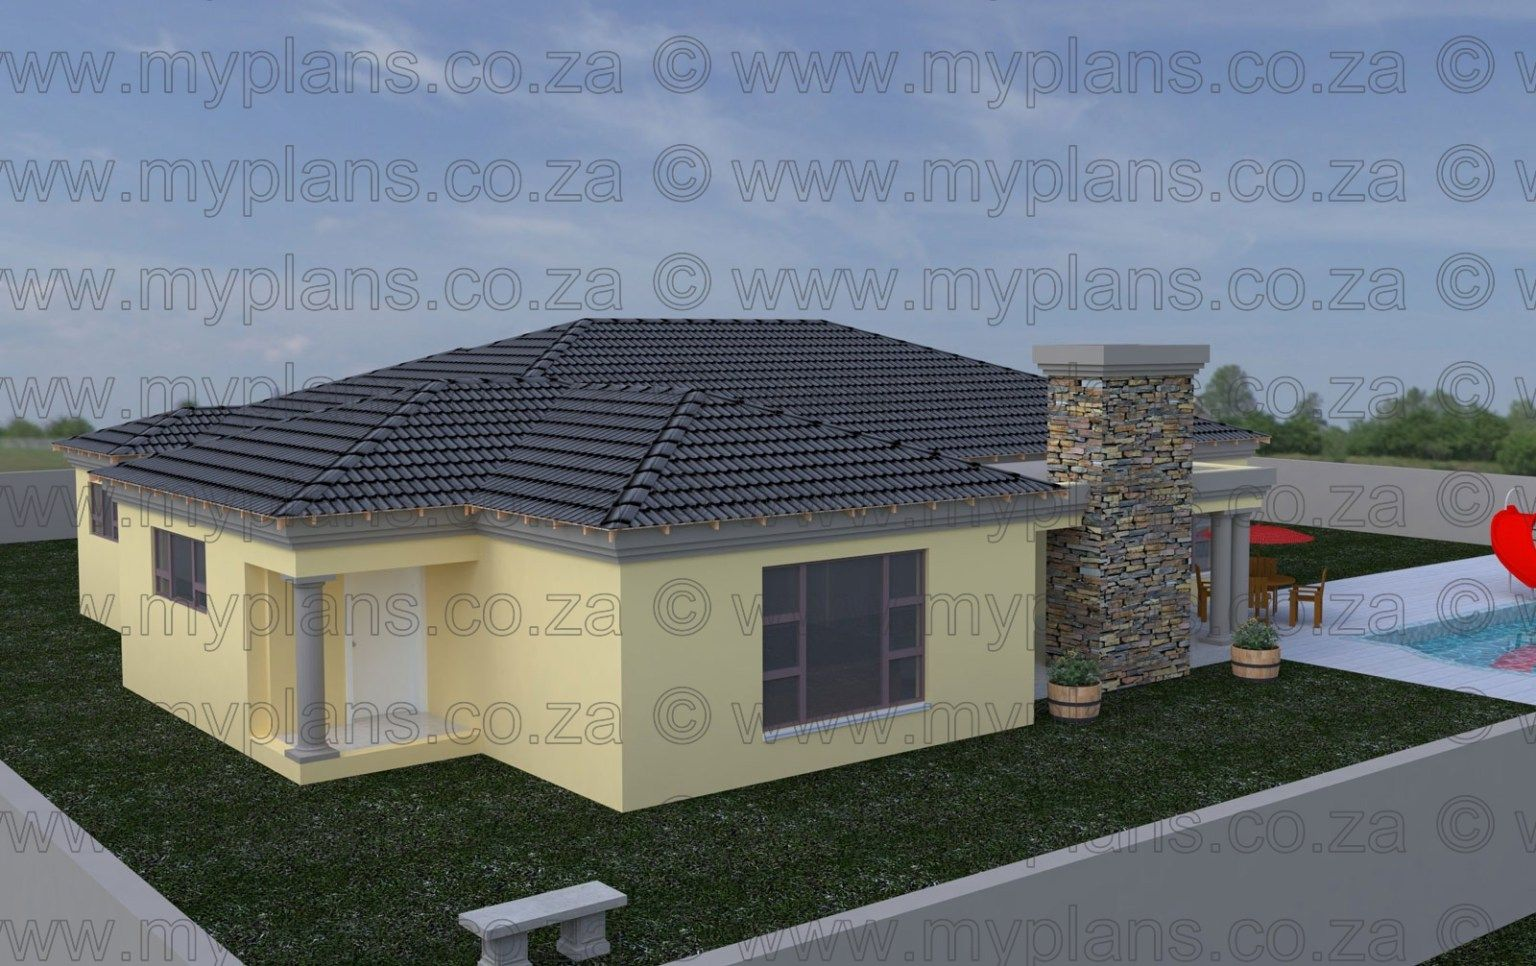 3 Bedroom House Plan MLB-069S | Houses plans in 2019 | House ... on diy plans, draw your own deck plans, wedding plans, reading plans, travel plans, summer plans, food plans, my own house, dream home plans, my house design, my house blueprint, make your own plans, my house management, my house projects, office plans, my house books, my modern house, christmas plans, my house goals, design plans,